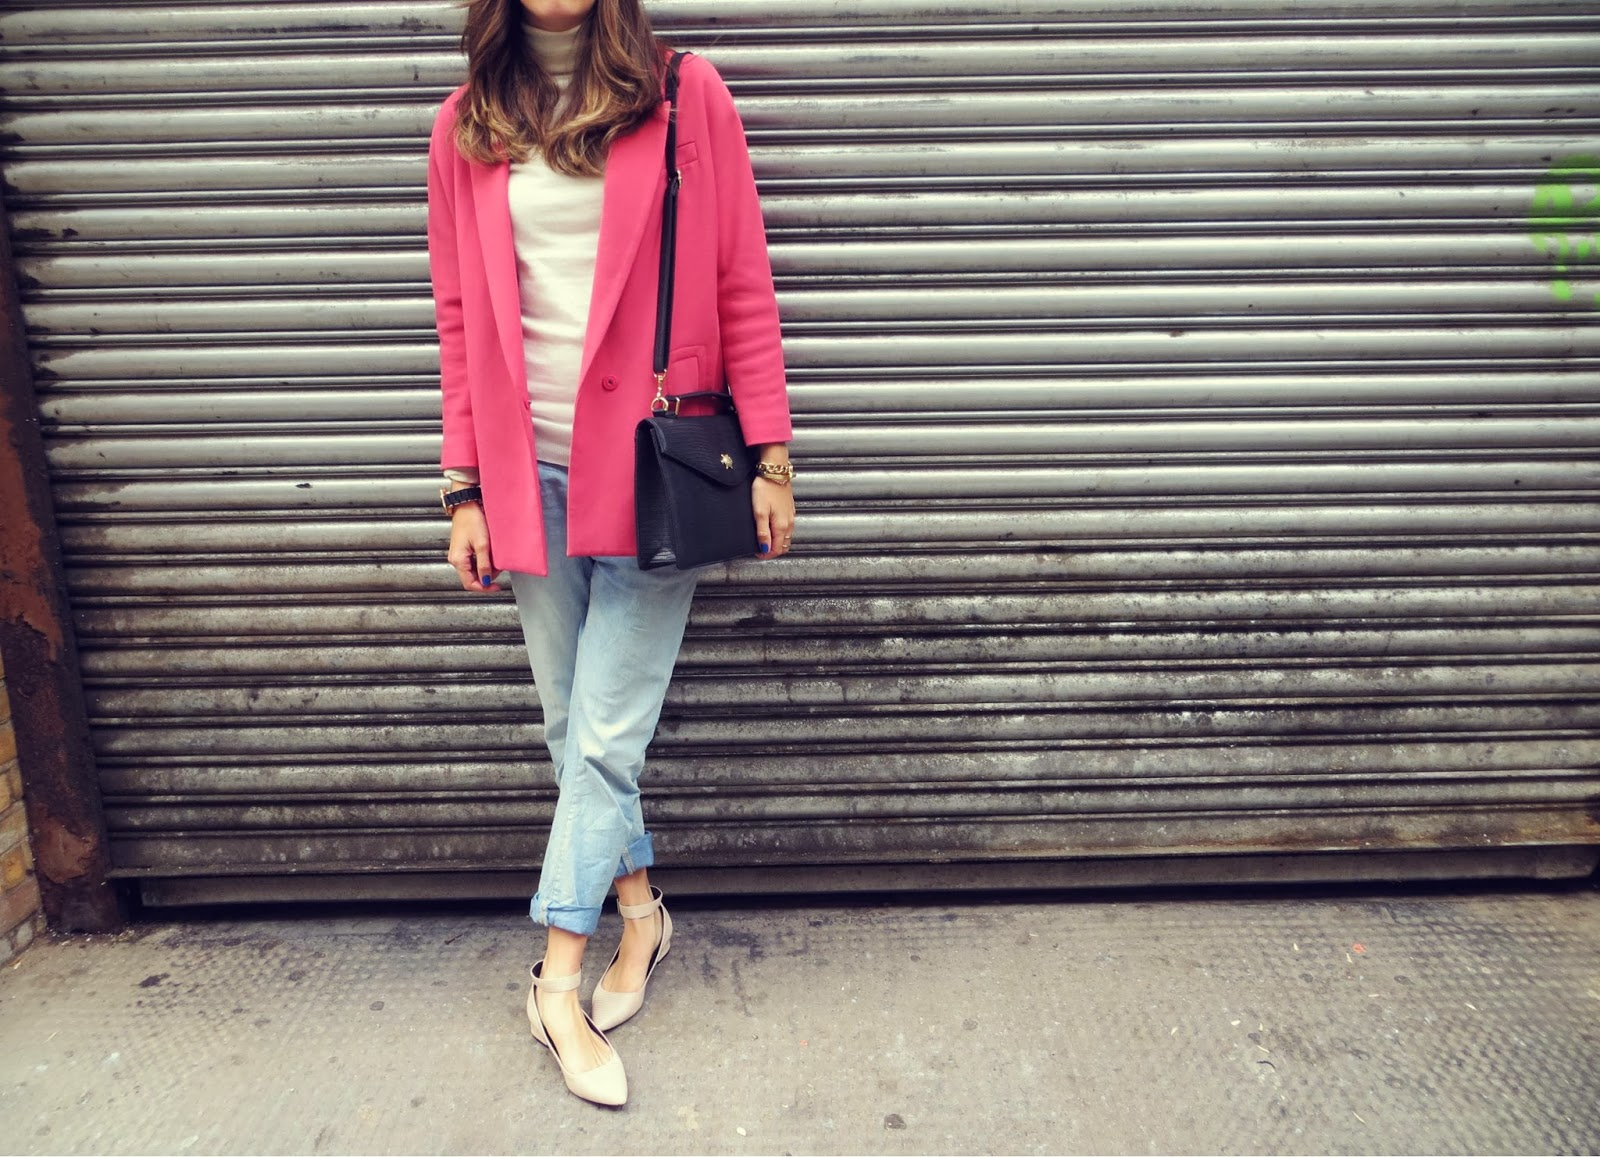 pink oversized mens coat h&m zara boyfriend jeans pointed pumps office shoes fashion london